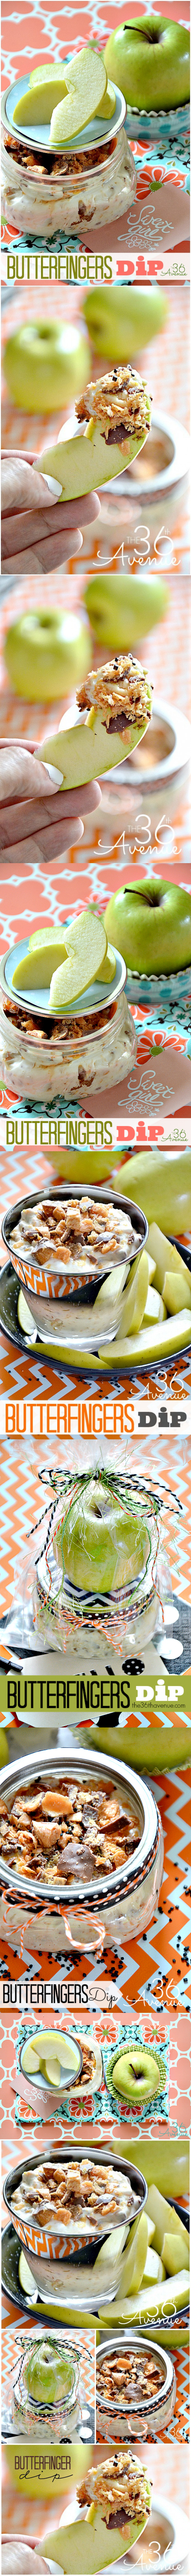 Butterfingers Dip Recipe - The 36th AVENUE